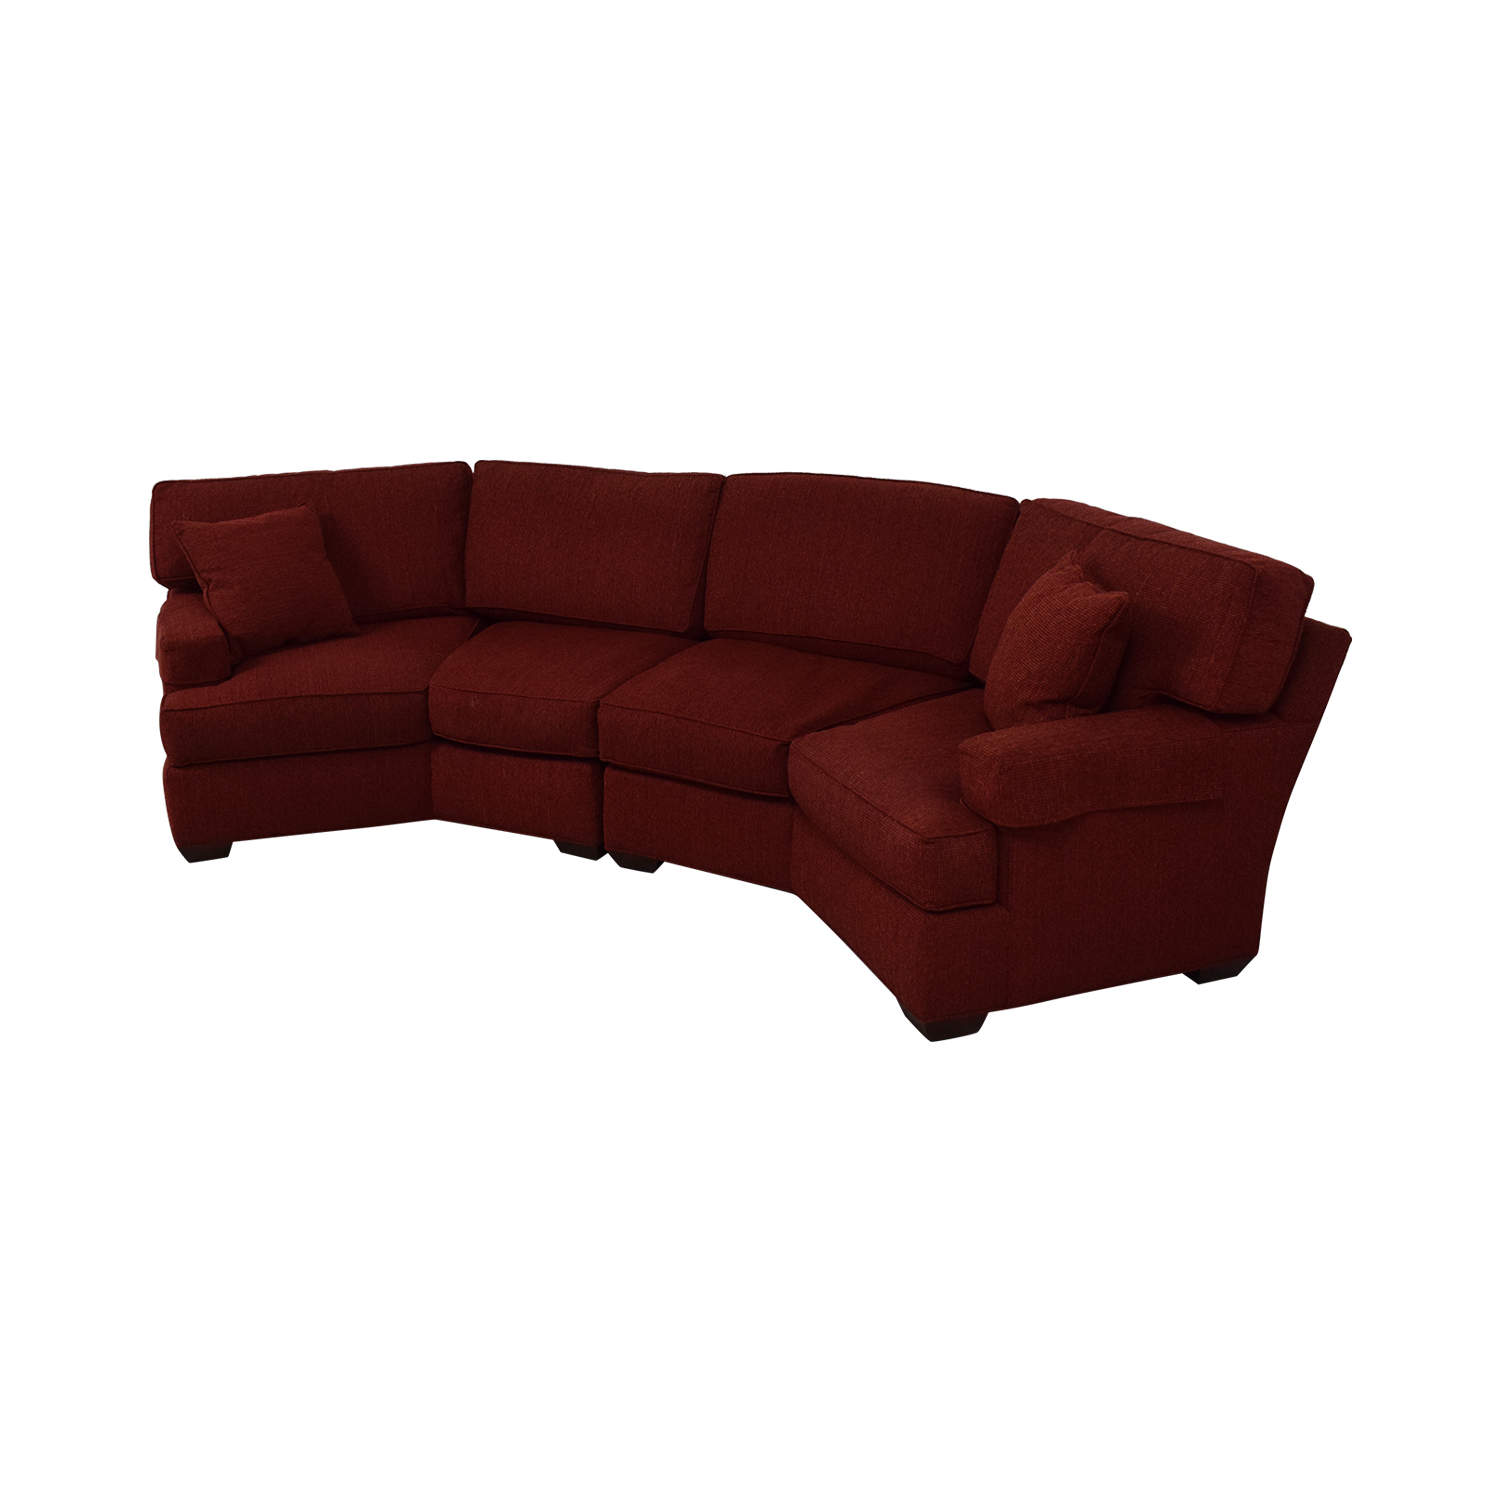 Pearson Pearson Red Wedge Sectional Sofa nj